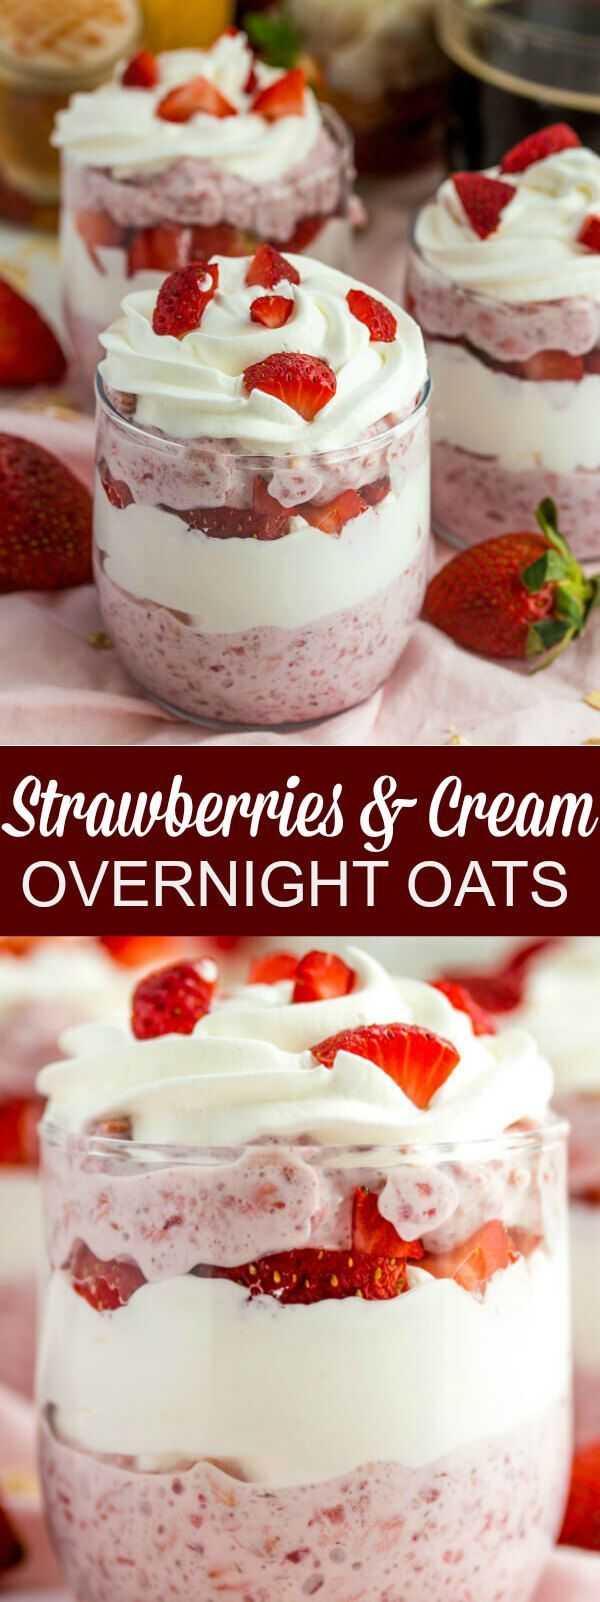 Fruity, creamy and utterly delicious these Strawberries and Cream Overnight Oats are an easy breakfast, @indelight  AD #SplashofDelight